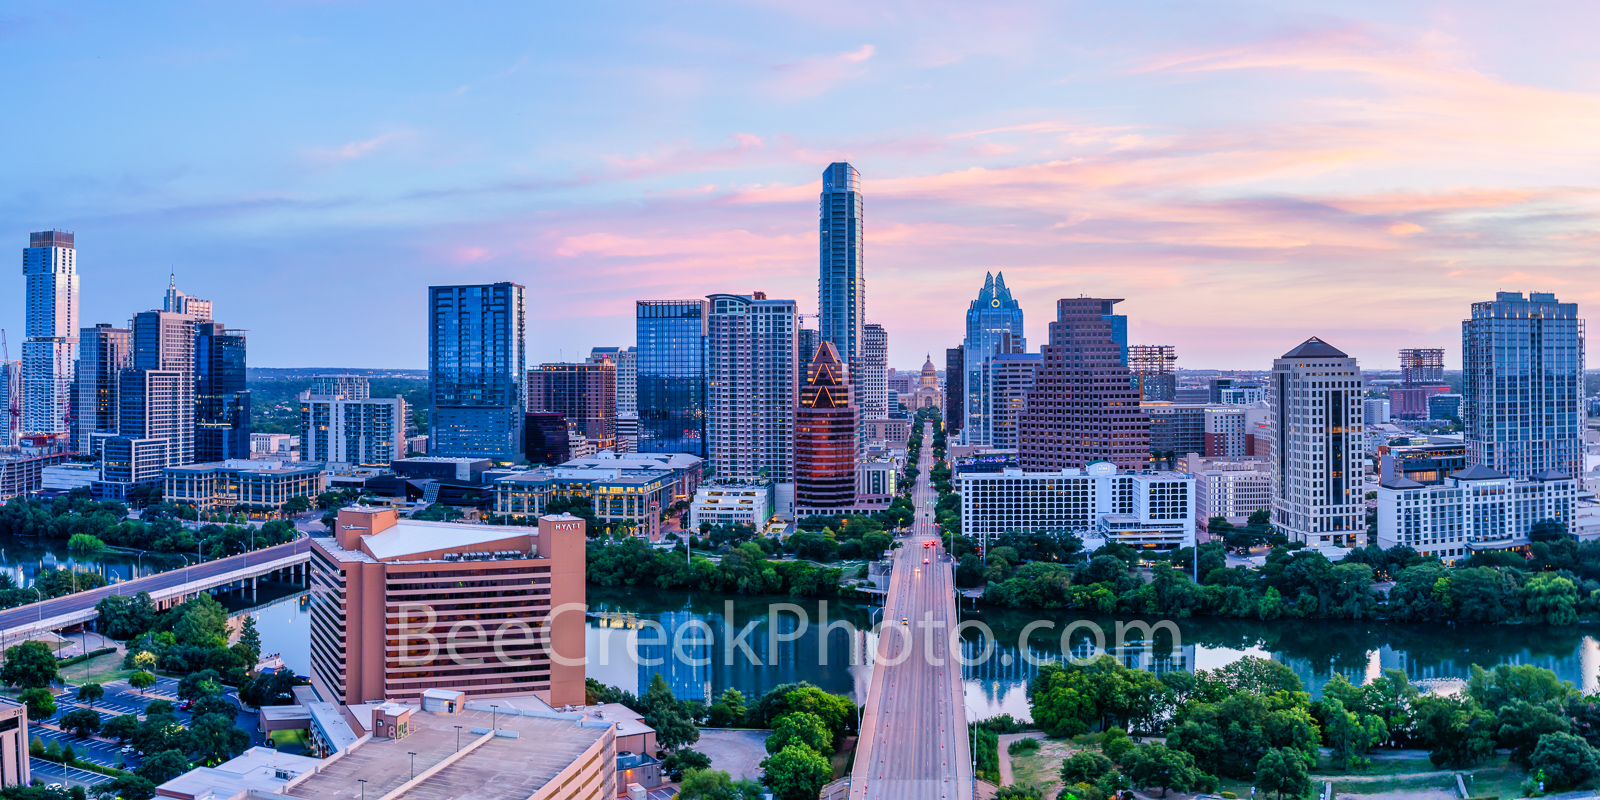 austin skyline, texas, austin texas,  sunrise, texas capitol, downtown austin, austin, congress bridge, austin tx, austin pics, congress,  austin hyatt, austin downtown, architecture, sunrise, pinks, , photo